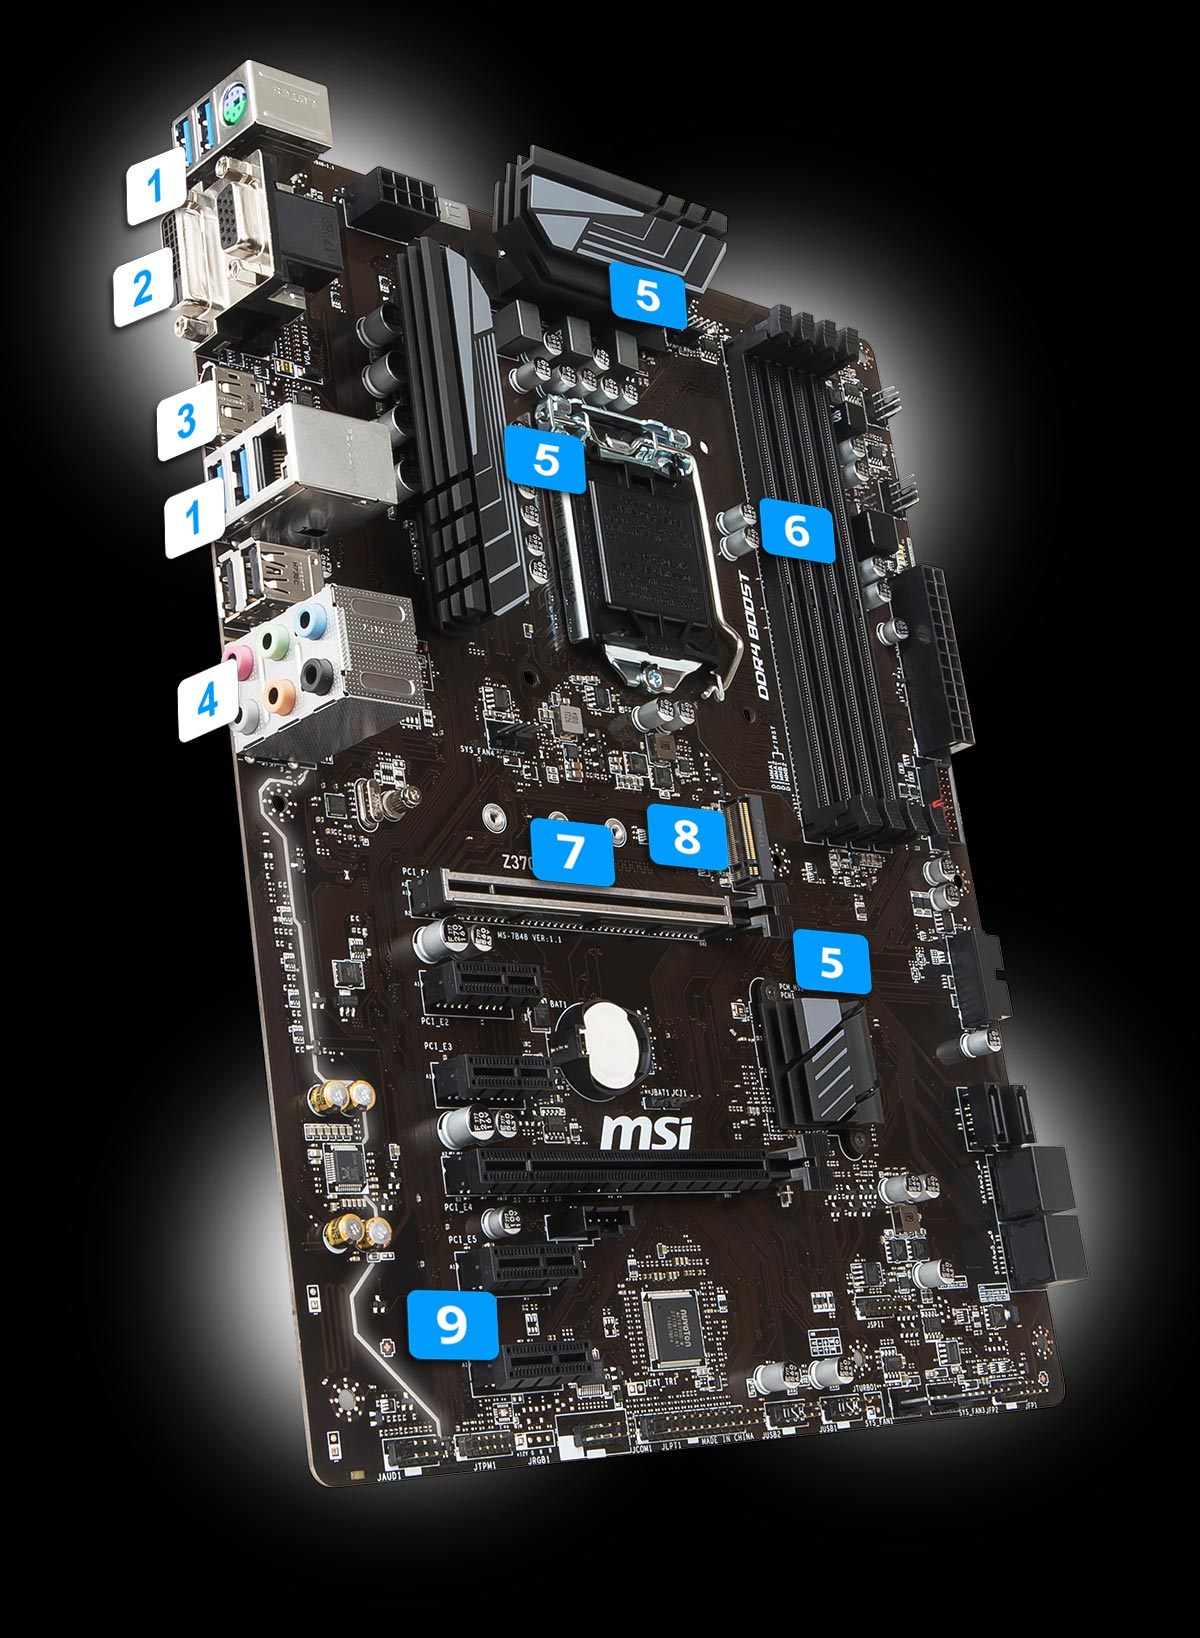 Z370 A Pro Motherboard The World Leader In Design Usb Plug Wiring Diagram On 2 0 Connection 4x 31 Gen1